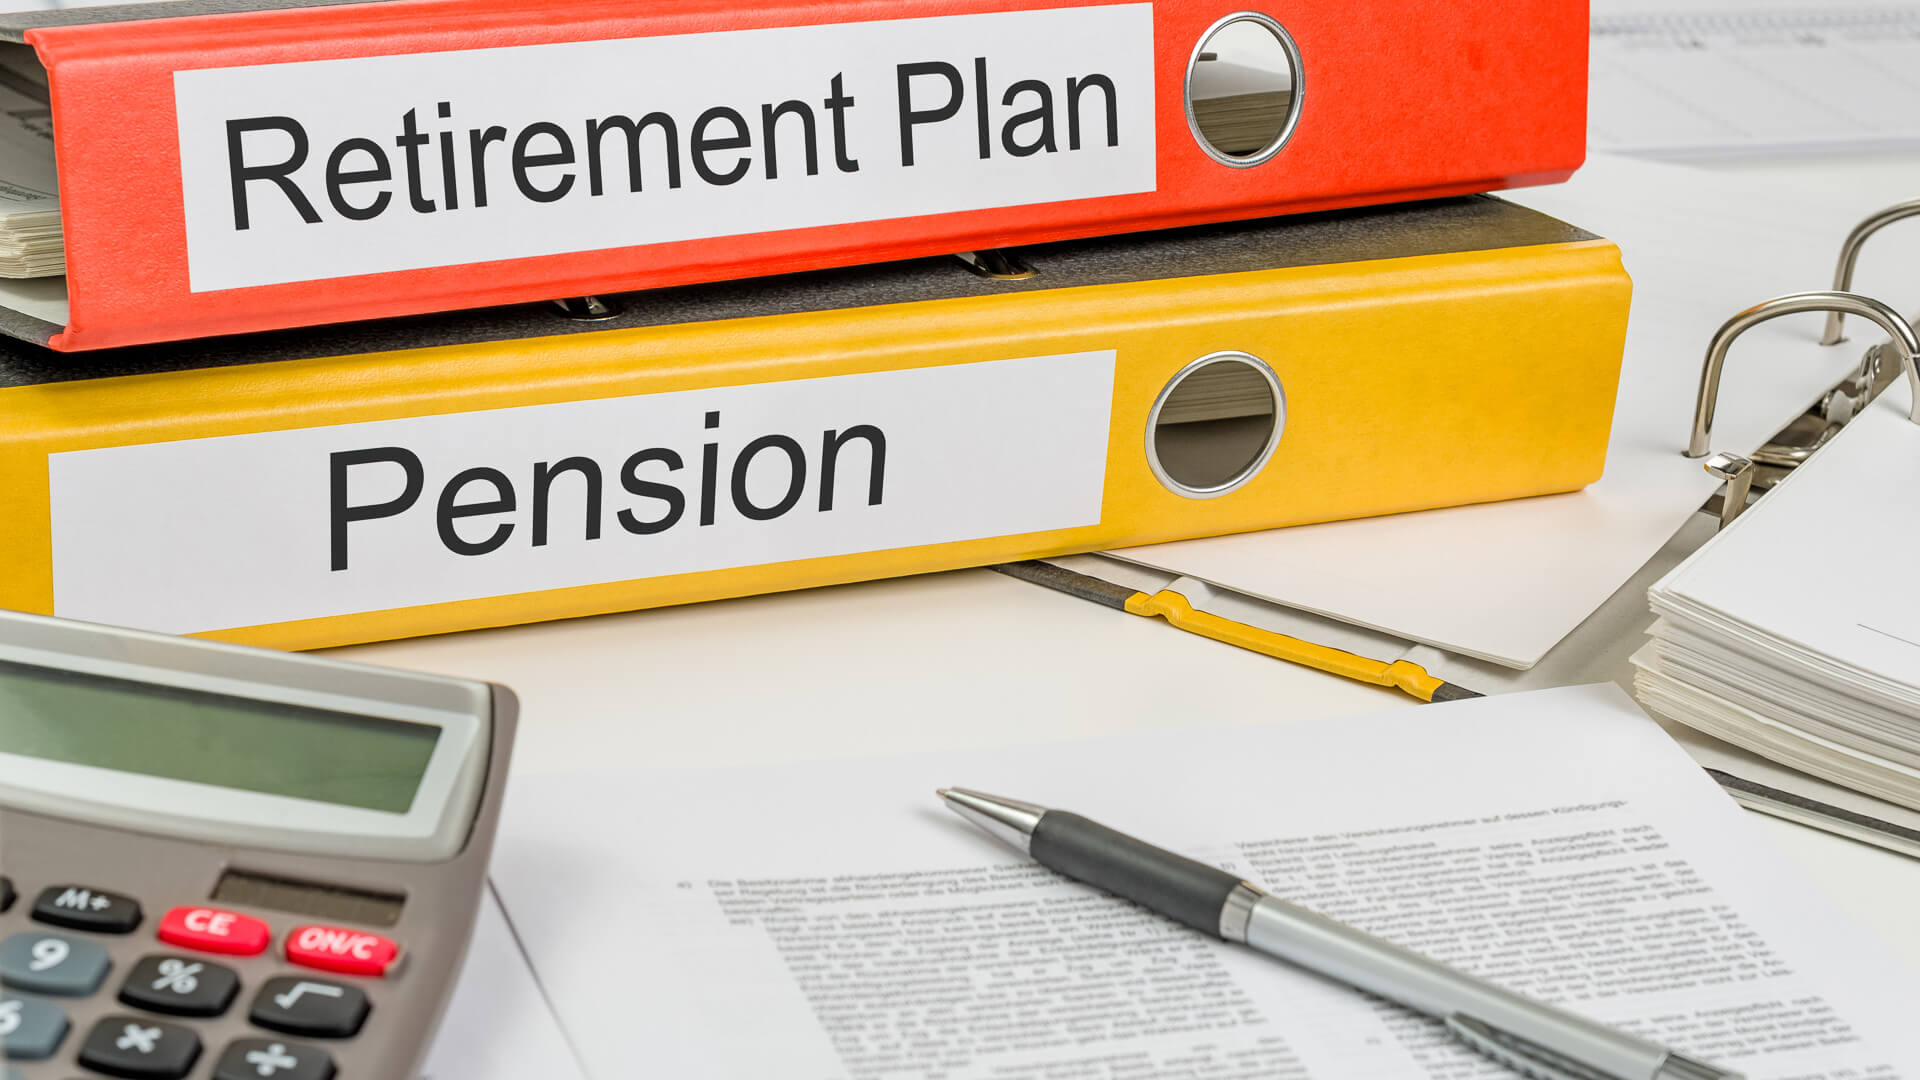 retirement plan and pension plan folders on desk